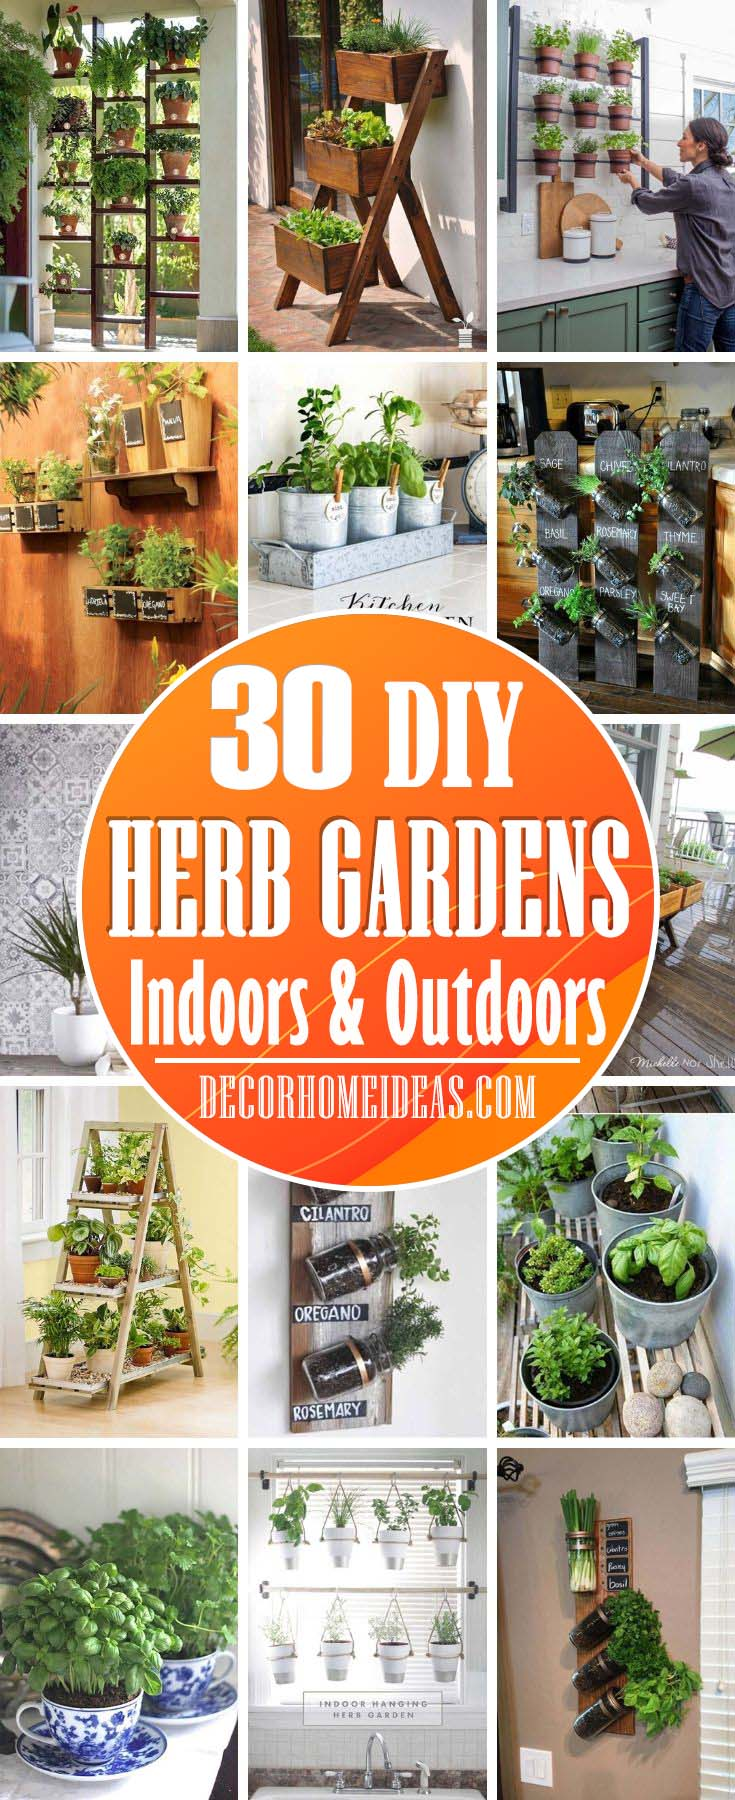 Best DIY Herb Garden Ideas For Indoors And Outdoors. Create a special place for your herbs and display them neatly and with style. #herbs #display #diy #decorhomeideas